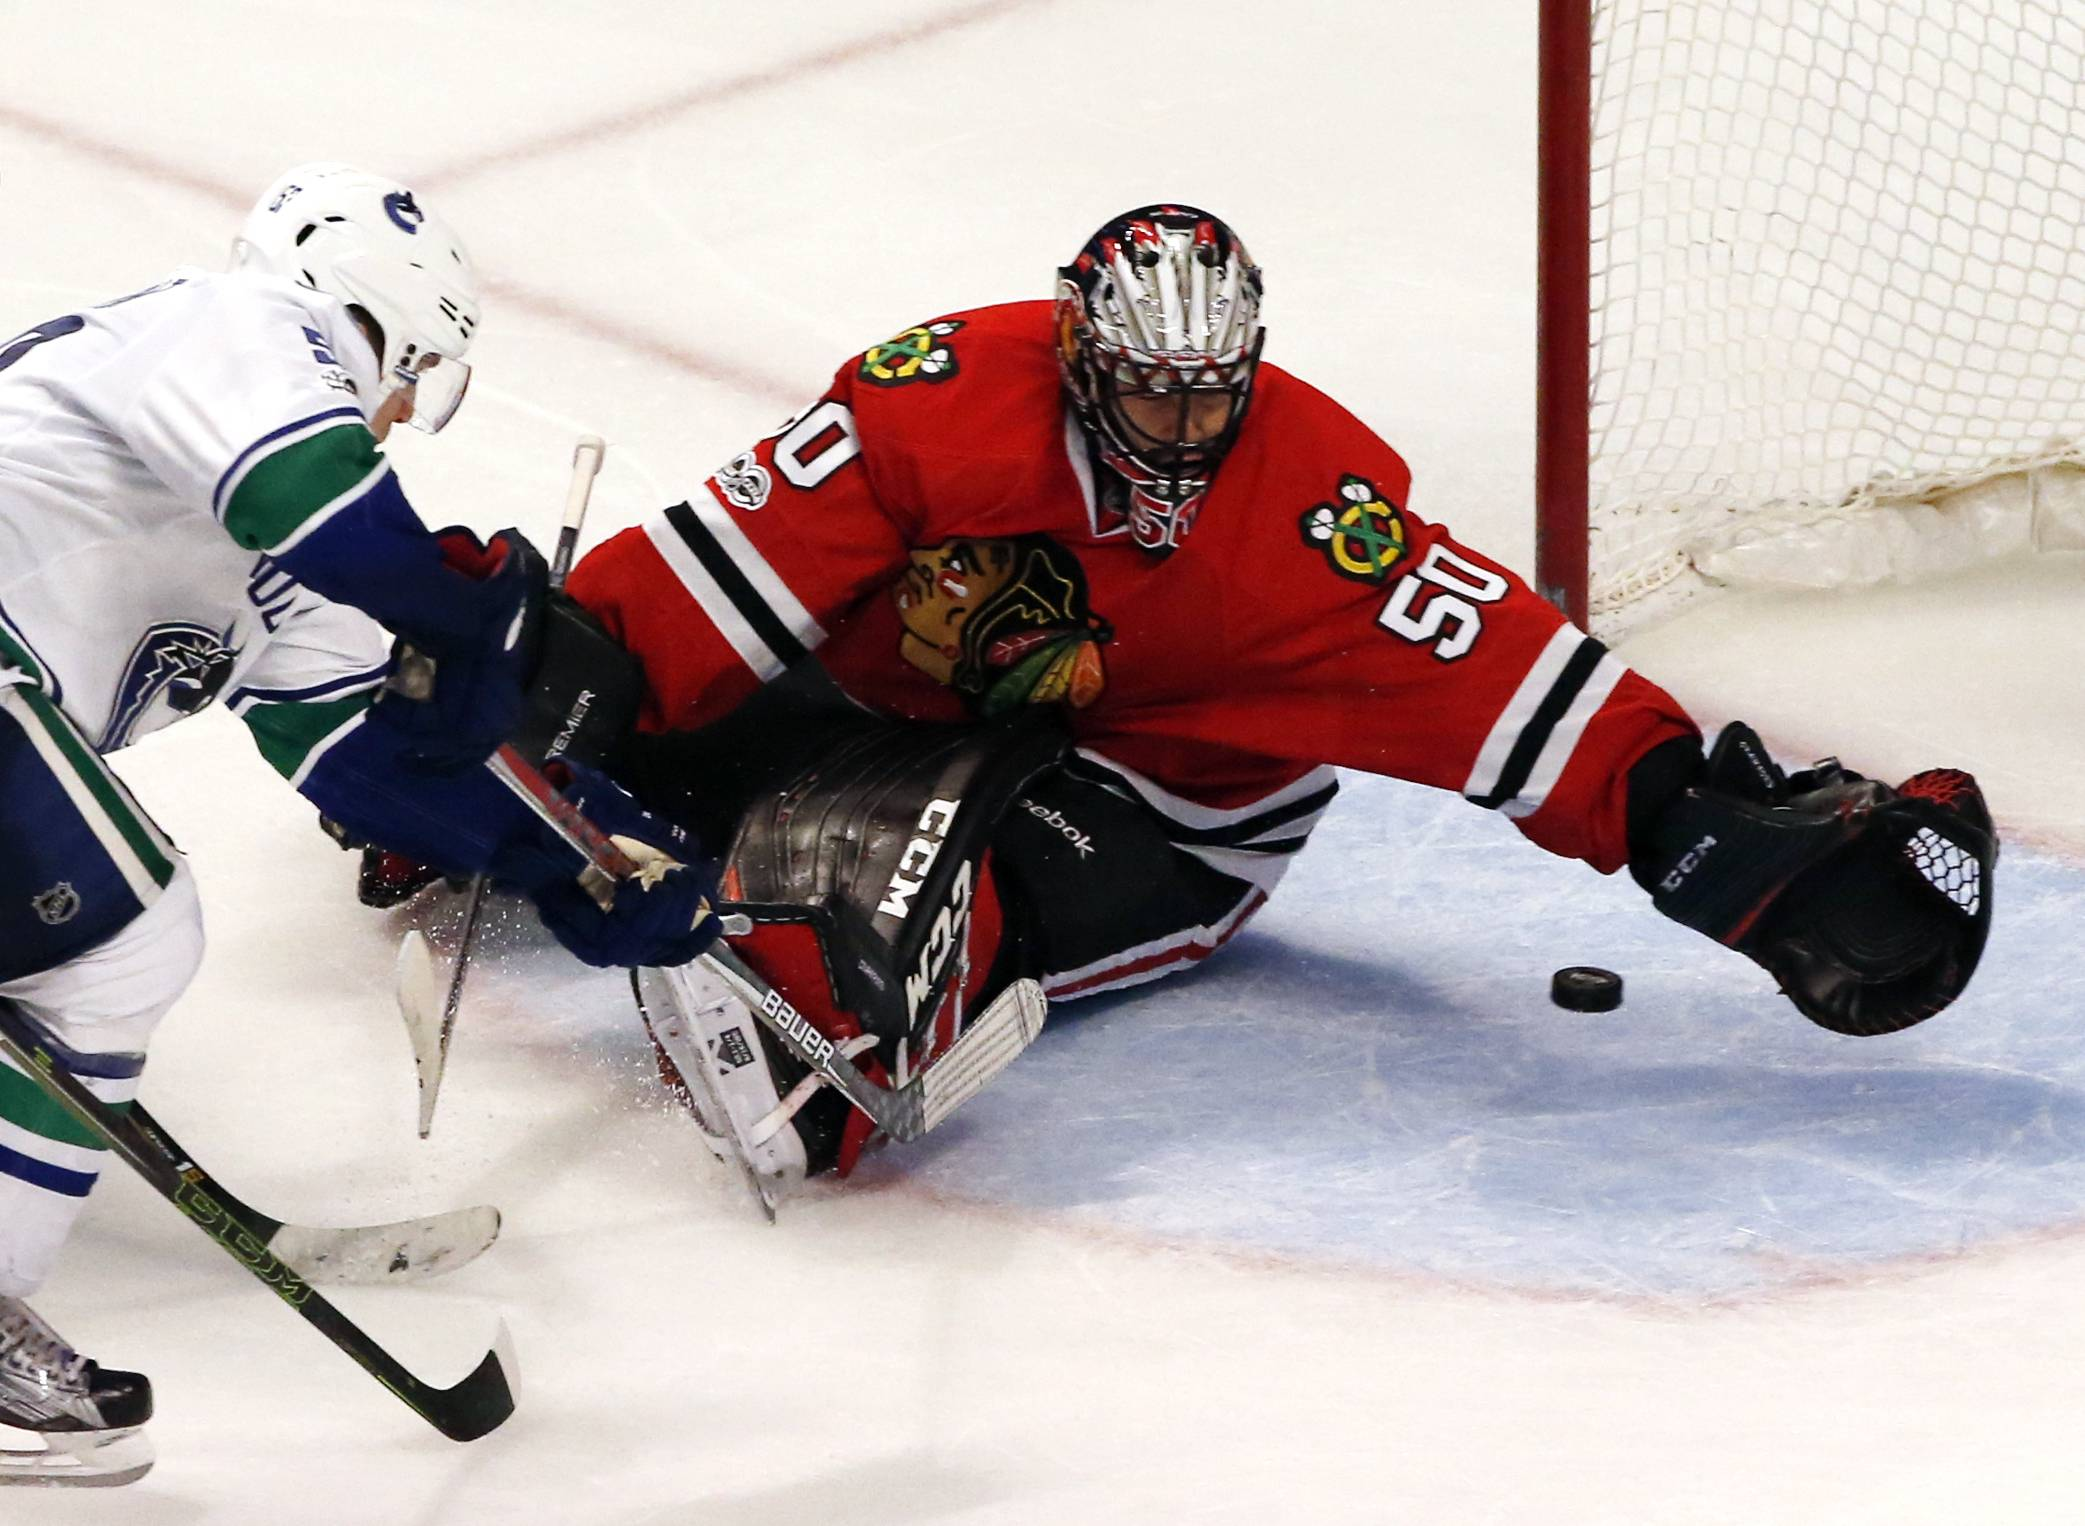 Vancouver Canucks center Bo Horvat, left, scores against Chicago Blackhawks goalie Corey crawford during the third period of an NHL hockey game, Sunday, Jan. 22, 2017, in Chicago. (AP Photo/Nam Y. Huh)